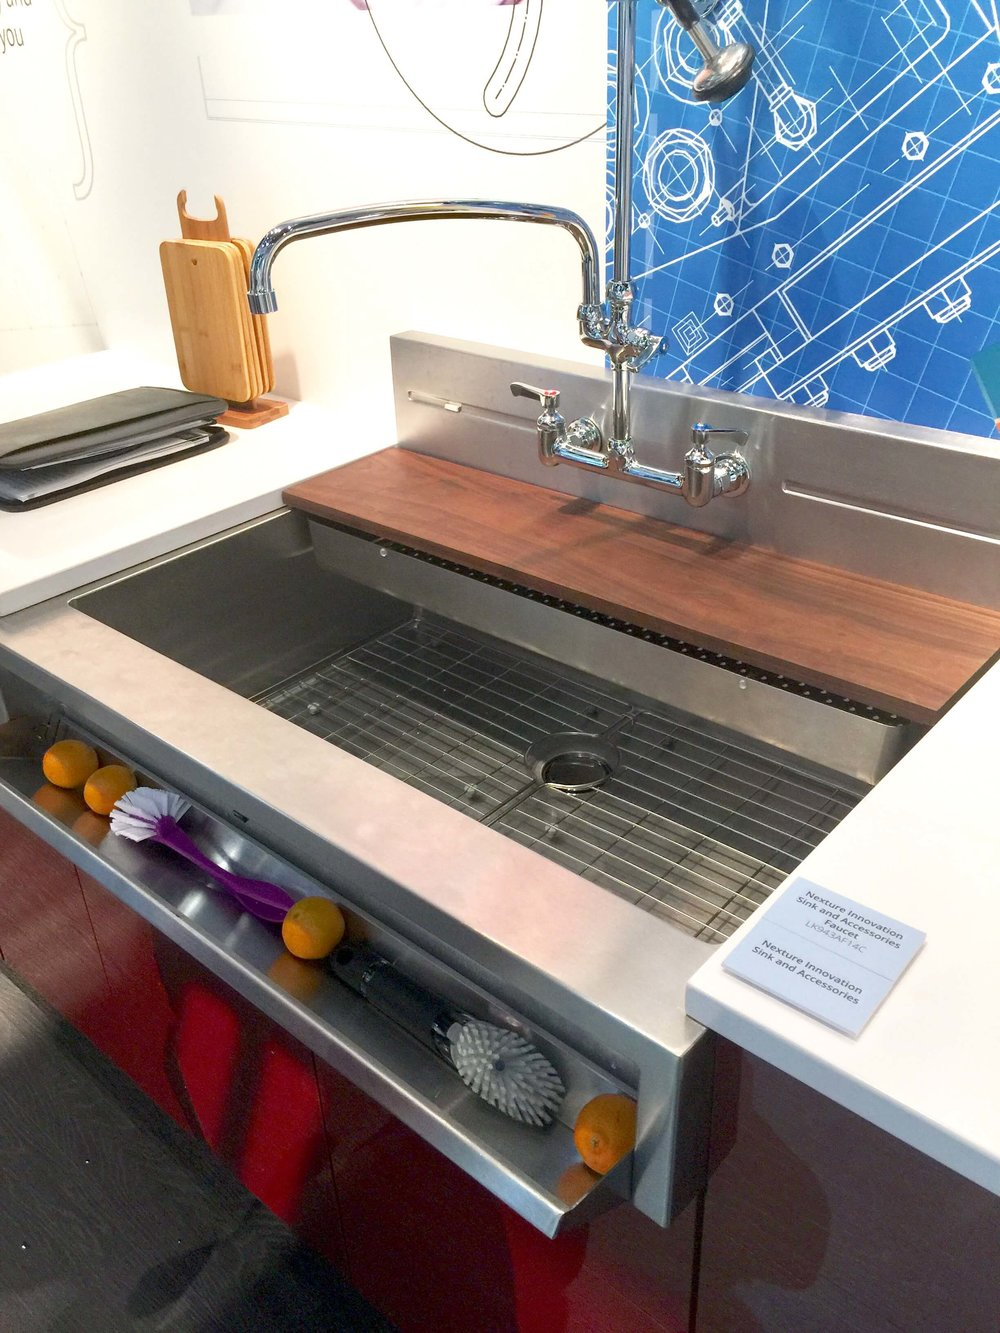 Elkay stainless steel prototype sink with tip out storage, sliding chopping board and strainer and stainless splash w/ wall mount faucet.